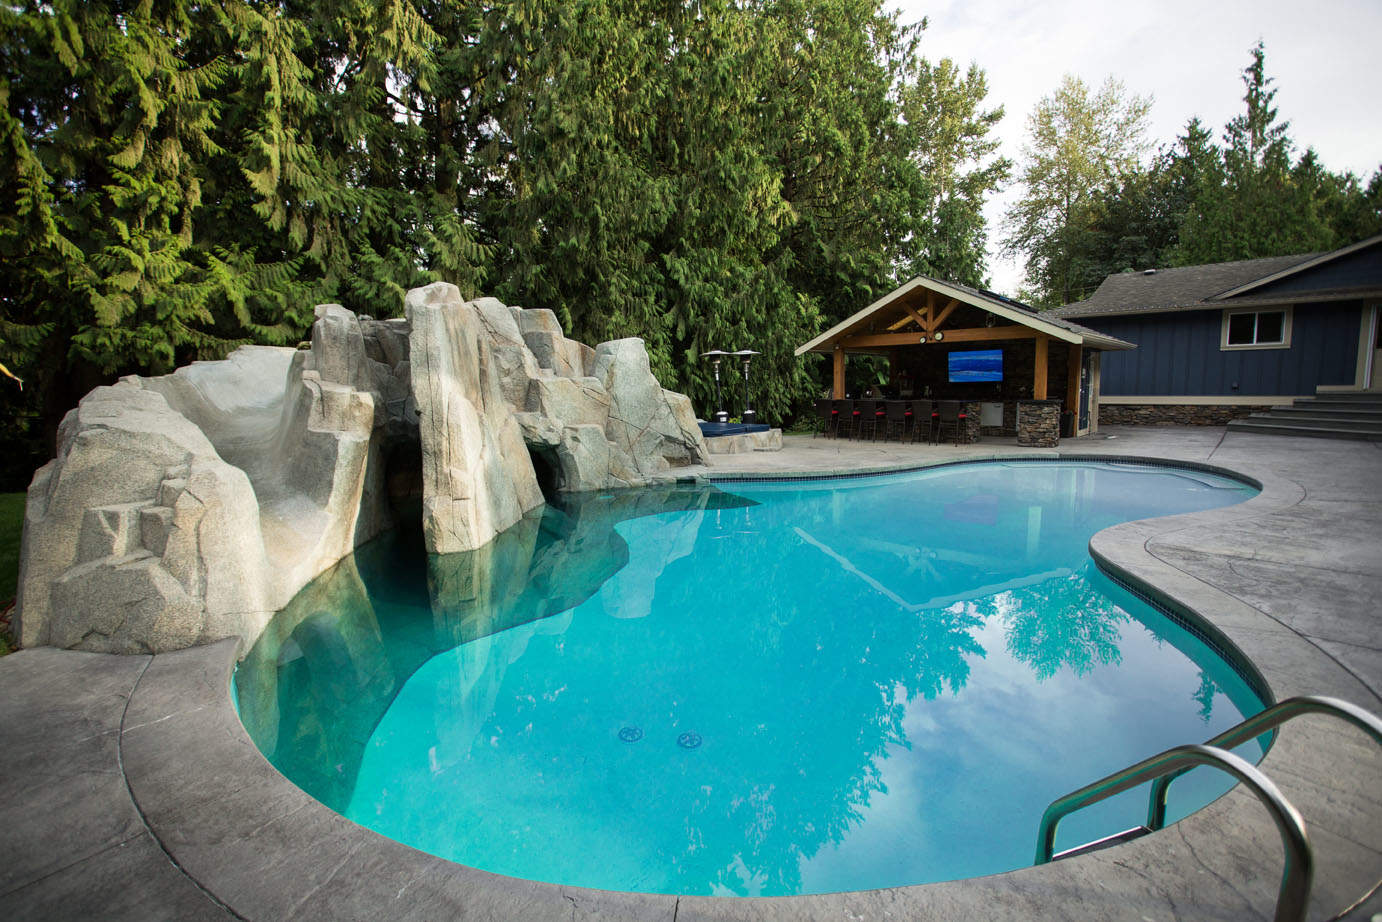 Top quality energy efficient swimming pool featuring artificial rock work